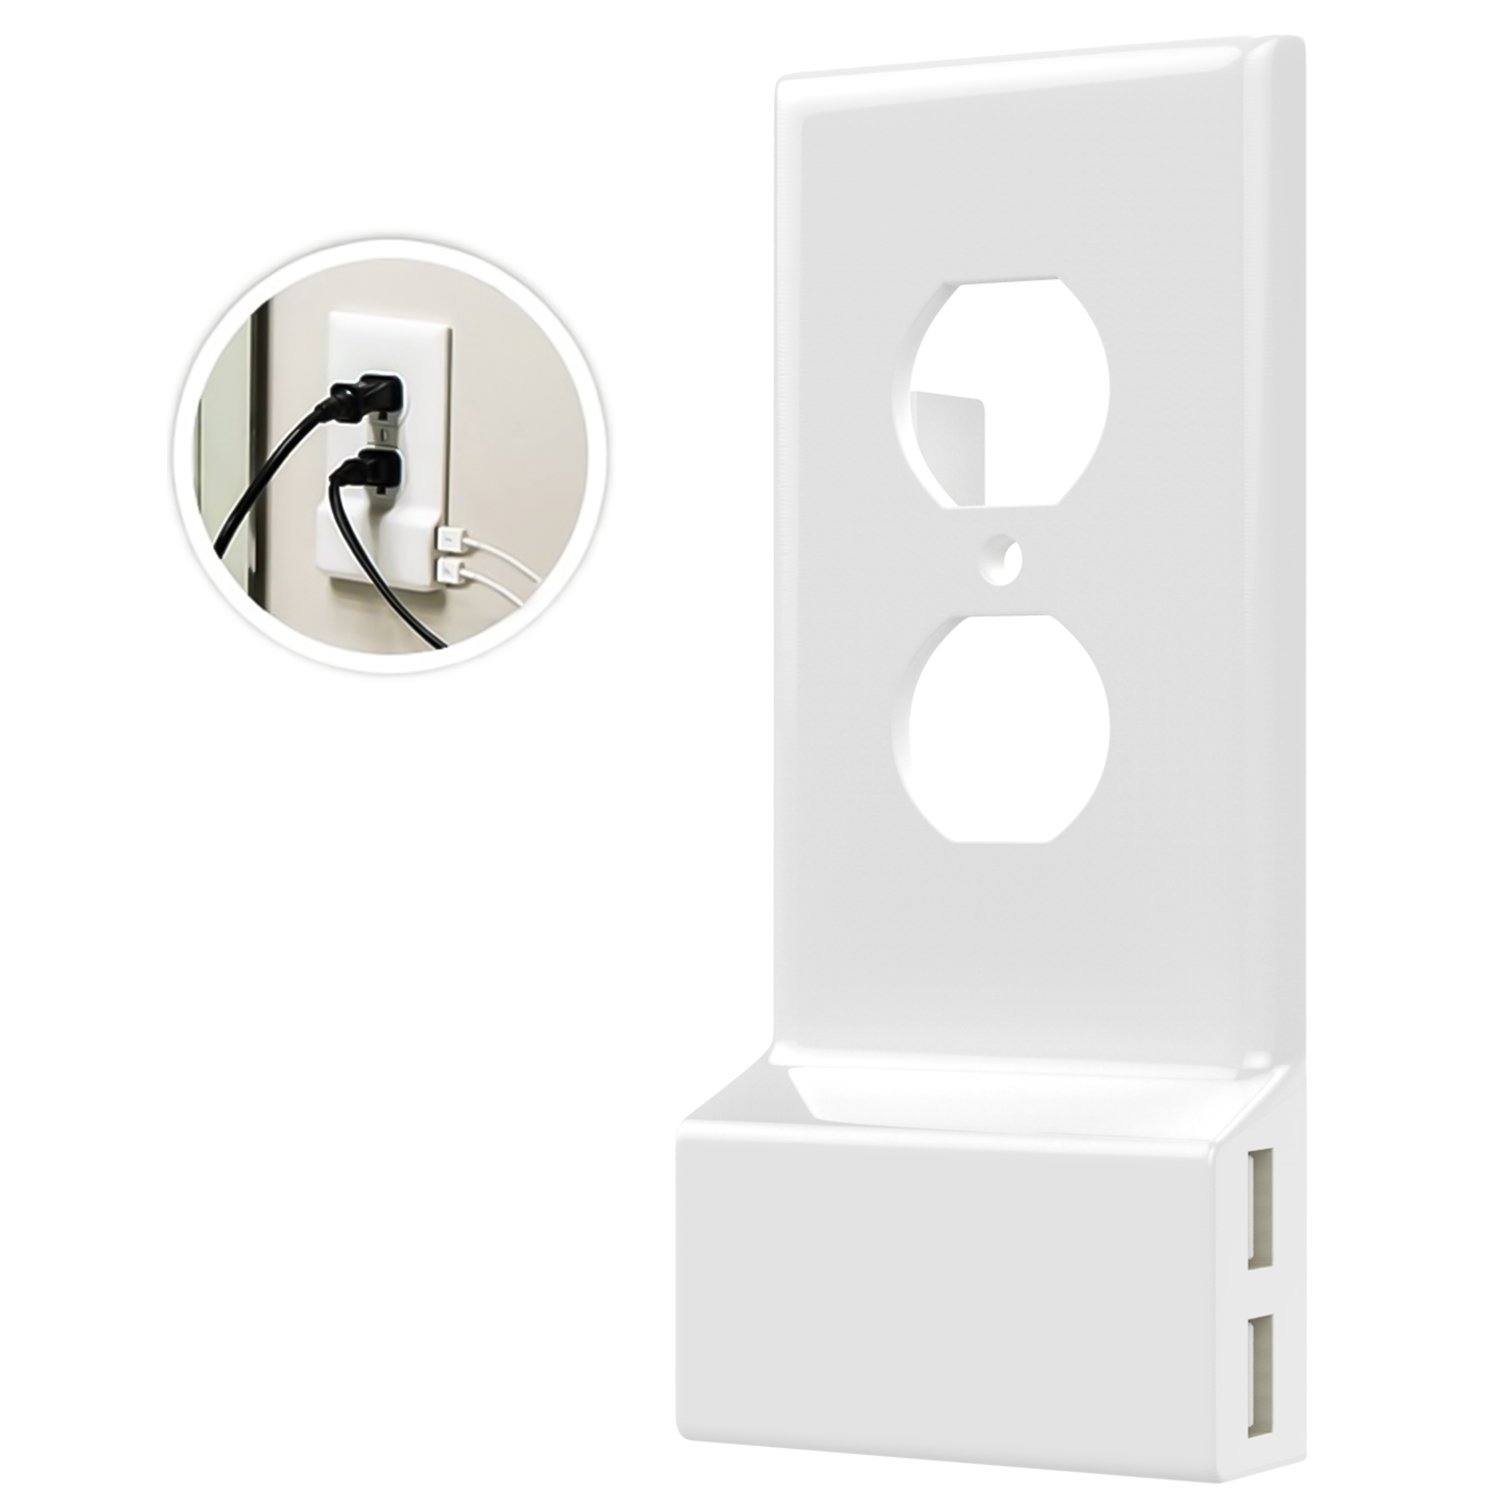 MoKo USB Outlet Wall Plate, Duplex Upgrade Version Snap On Power Wall Outlet Cover Plate Replacement with 2 USB Charging Ports for Cellphones, Tablets, Fire Stick, Power Bank - White